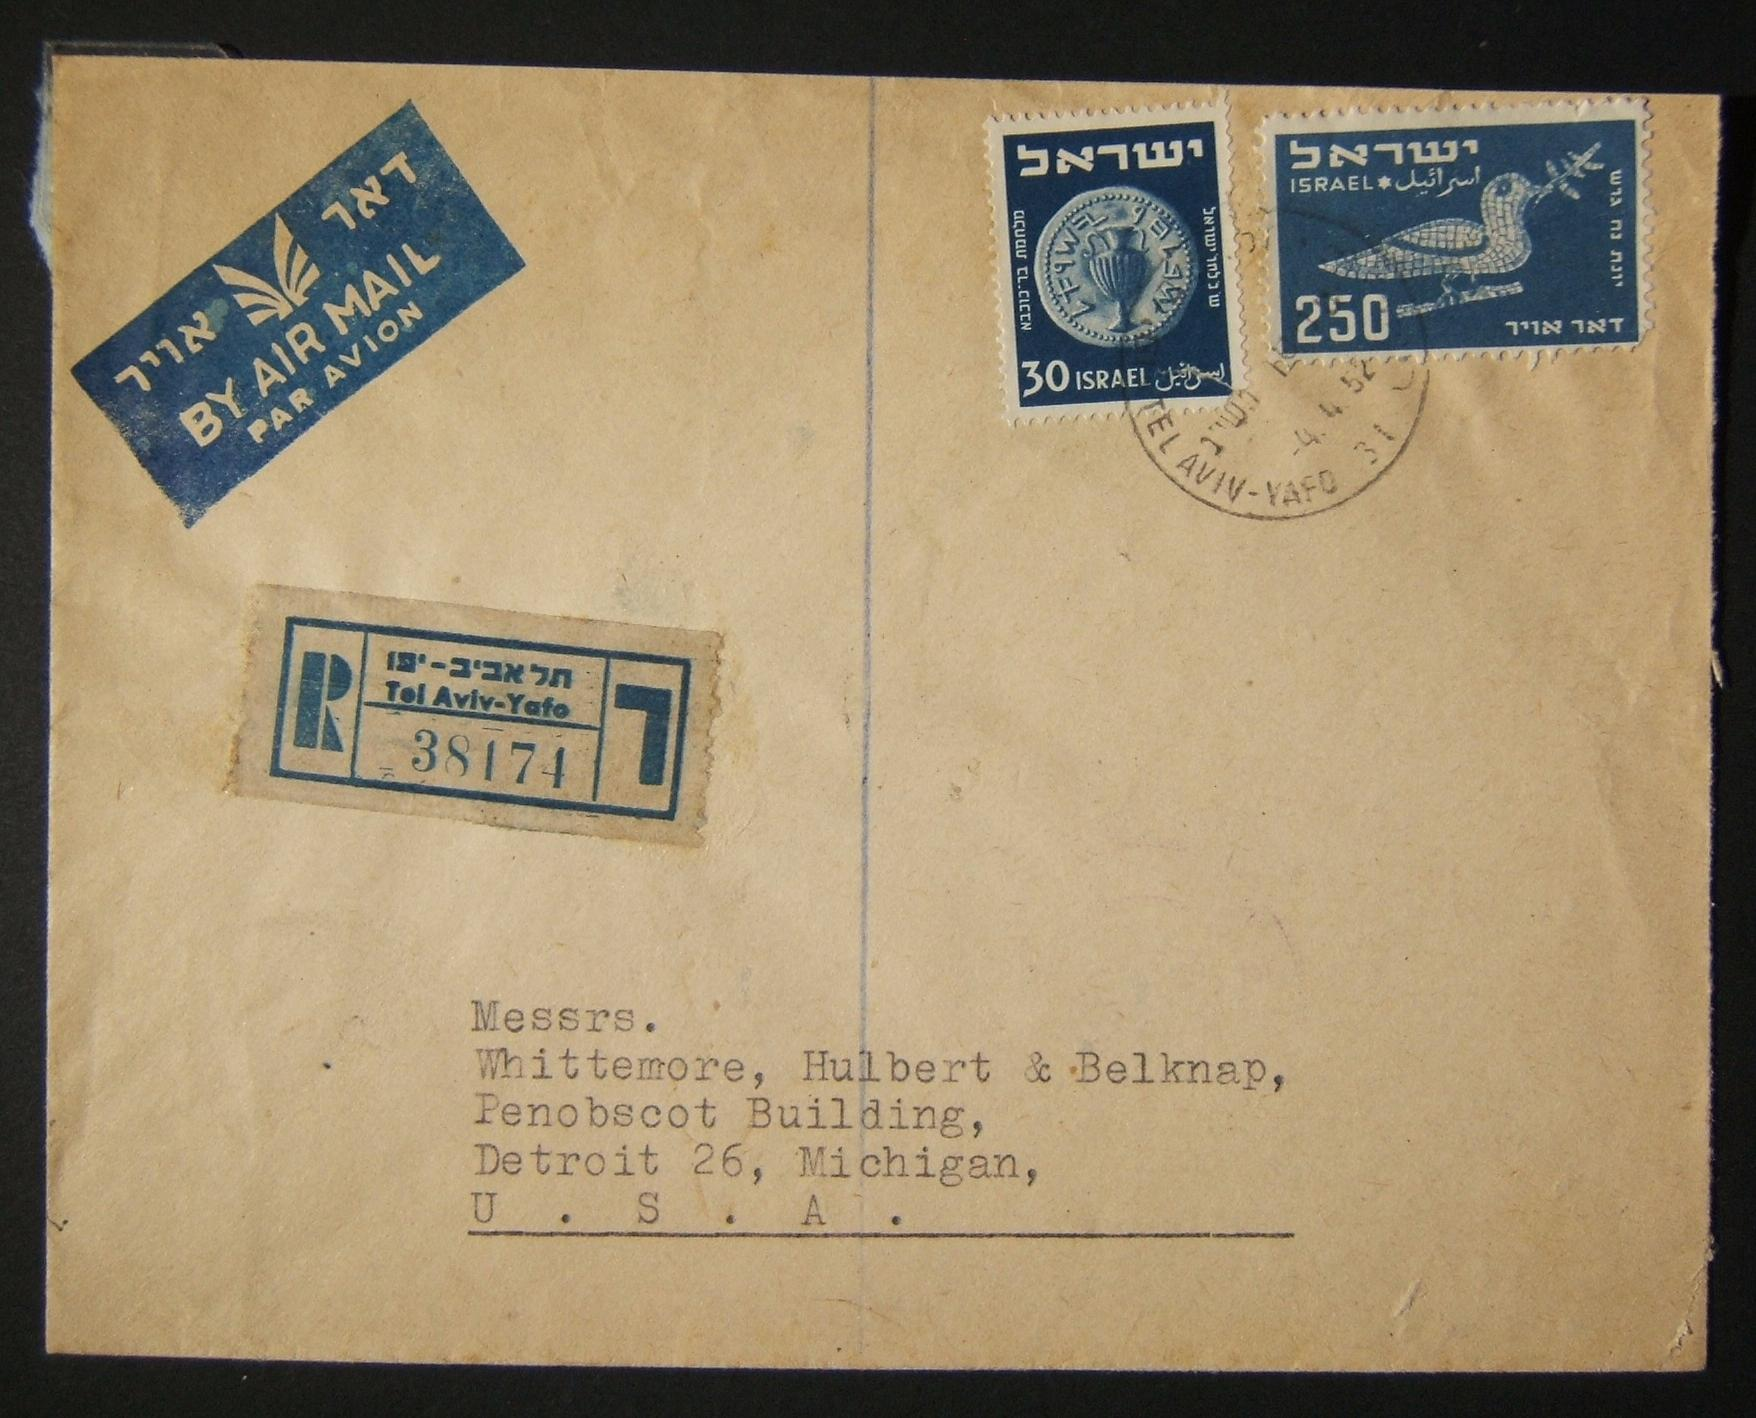 1950 1st airmail / PO's, rates & routes: 4-4-52 Israeli airmail stationary registered commercial cover ex TLV to DETROIT franked 280pr at the FA-3a period rate (220pr letter + 60pr